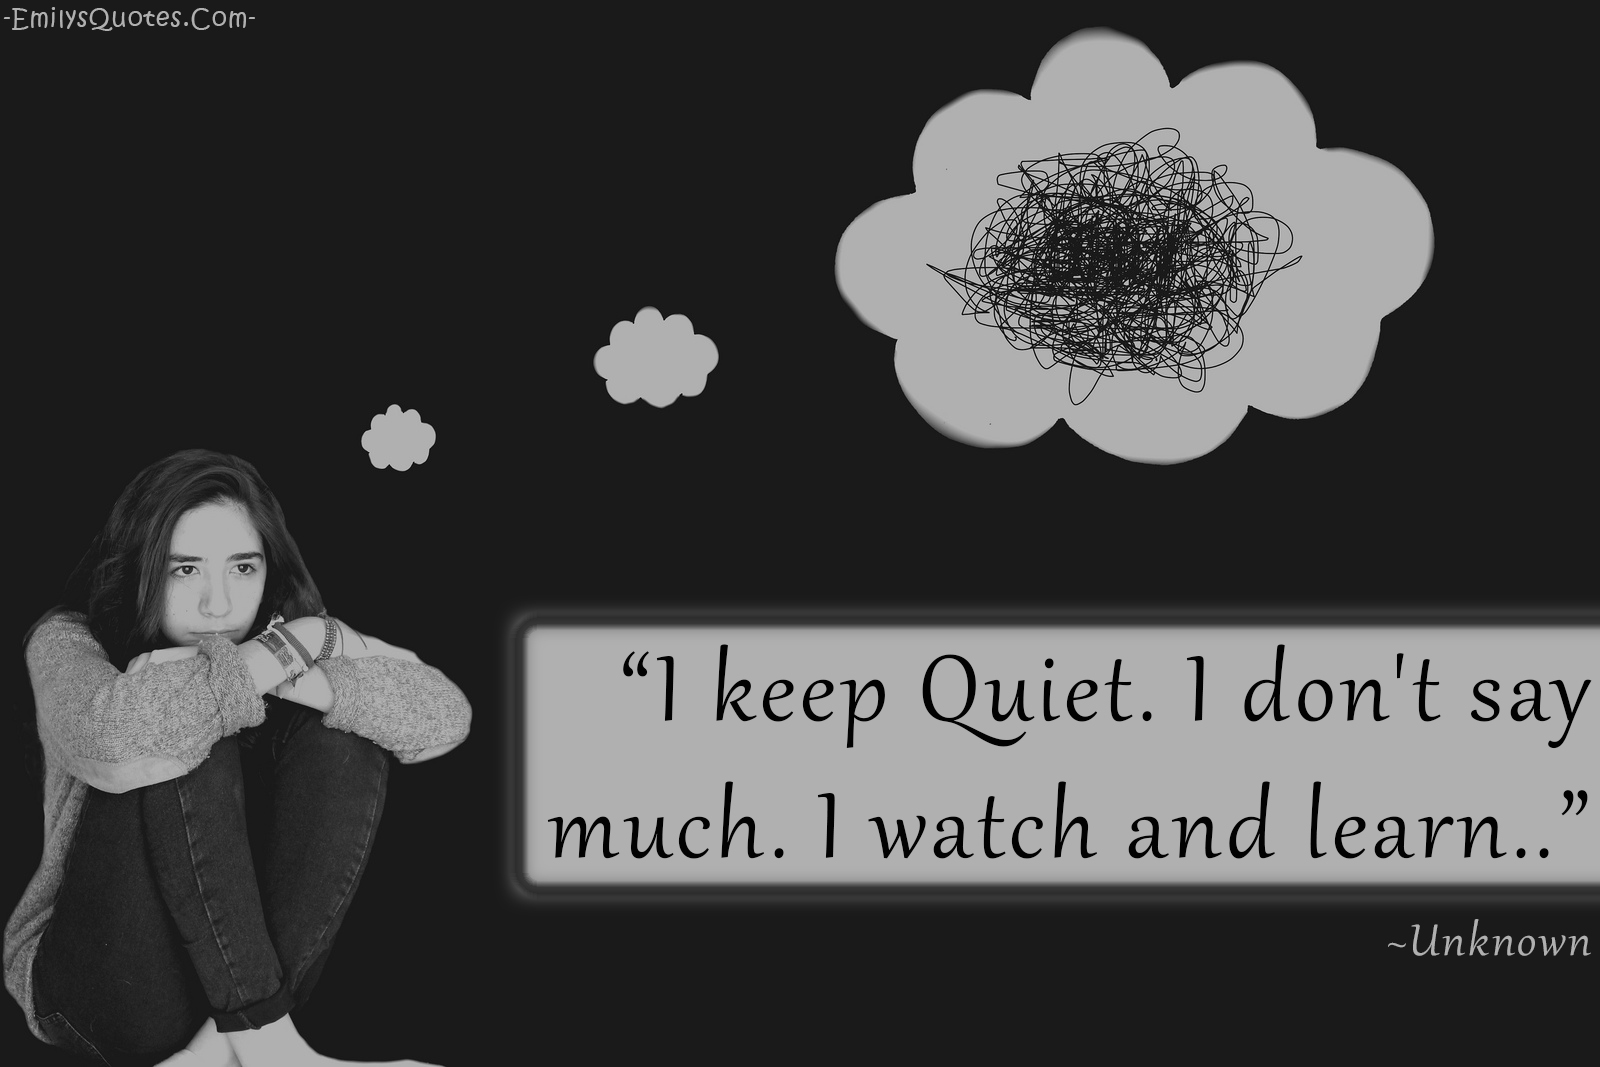 EmilysQuotes.Com - quiet, watch, learn, unknown